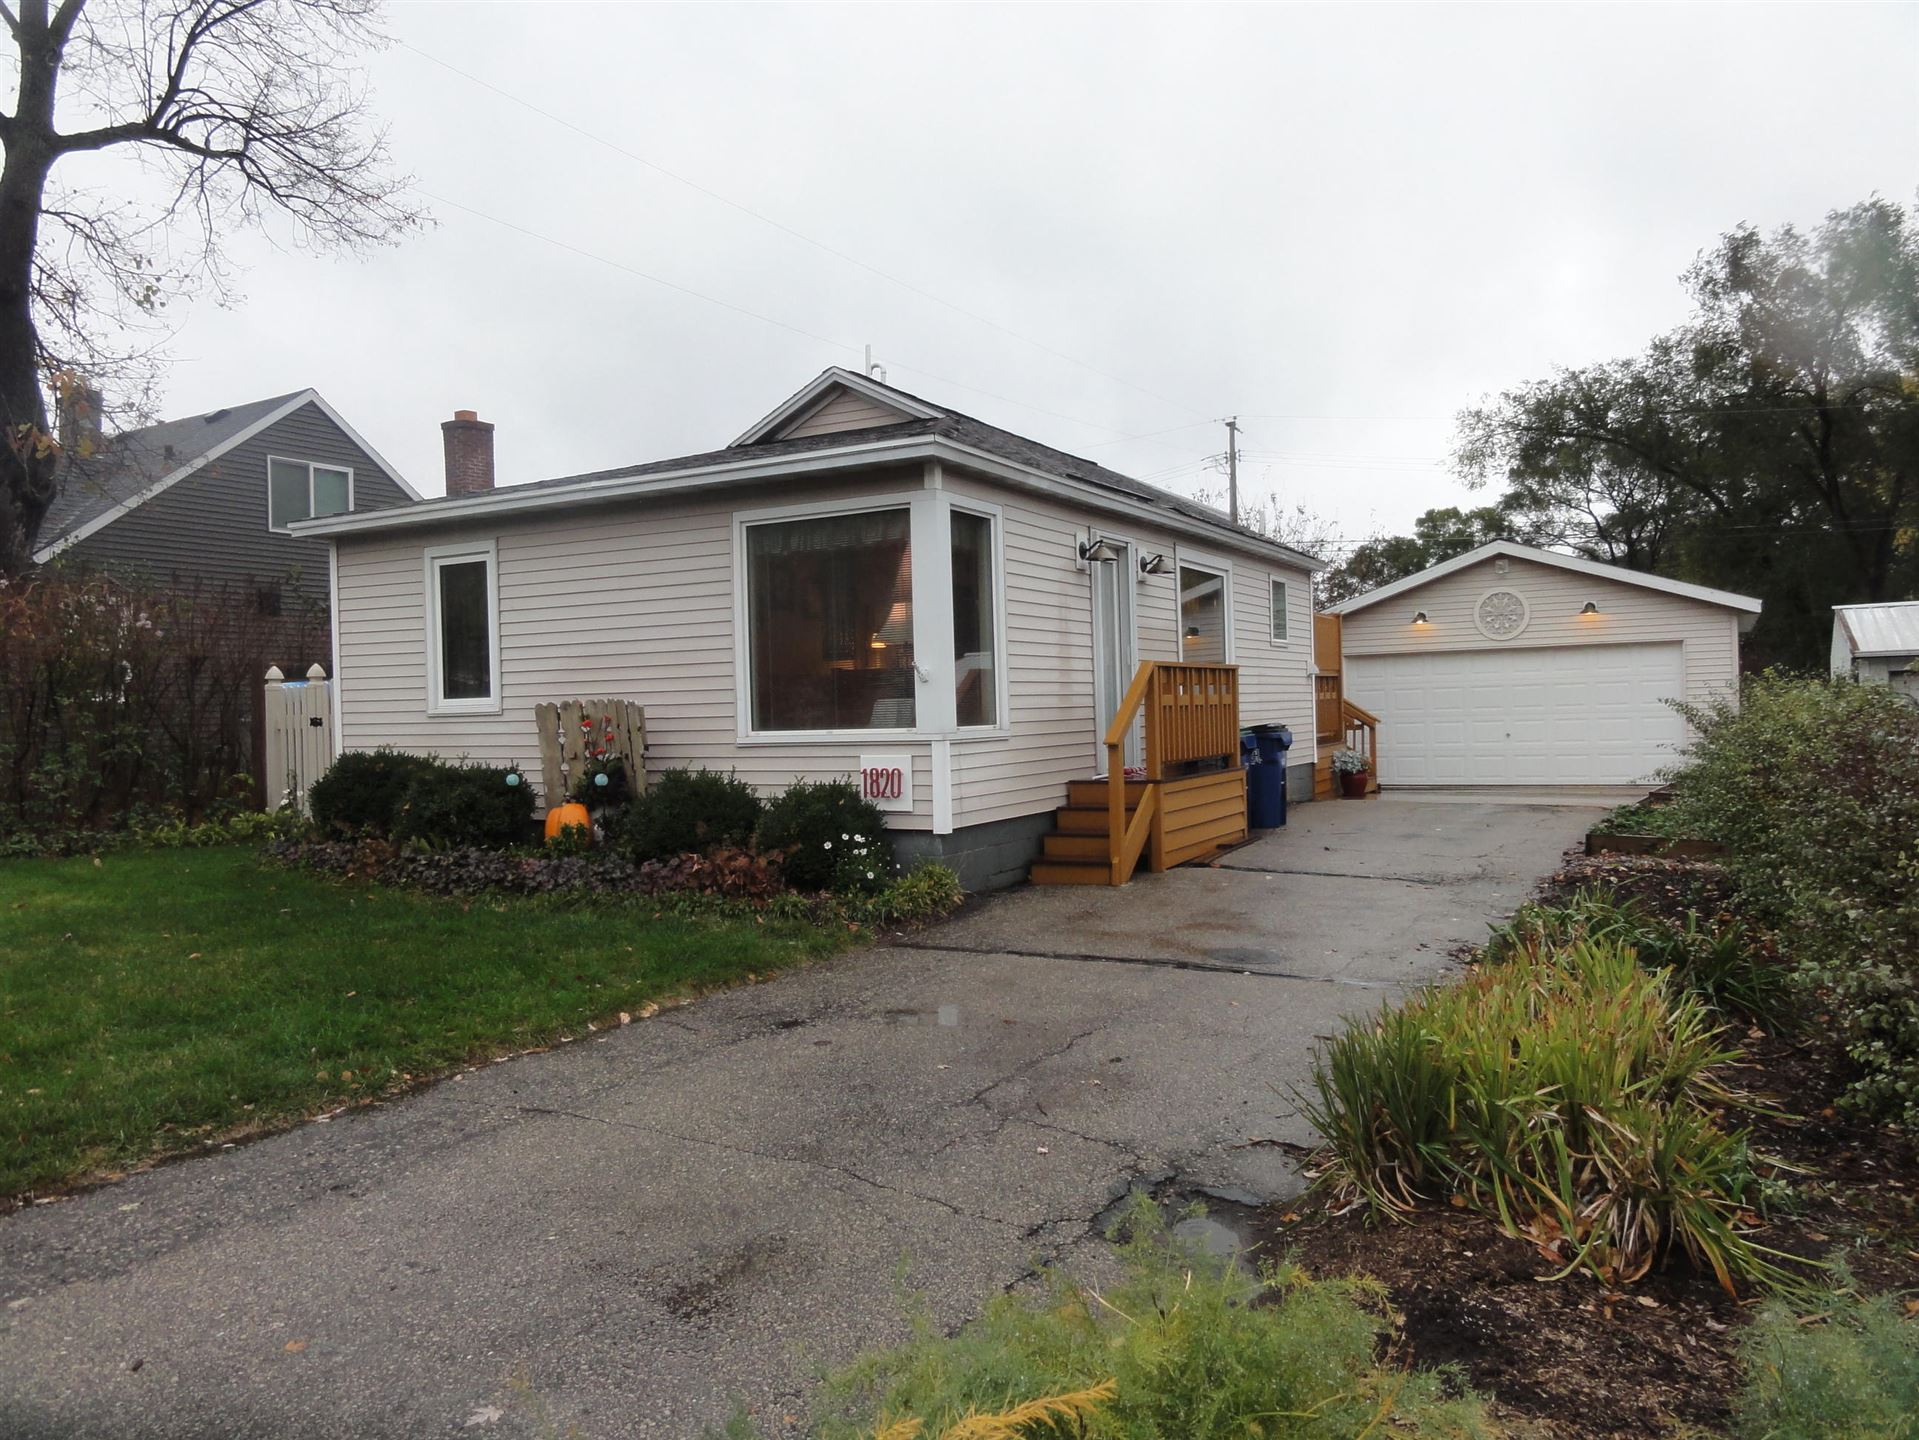 1820 Bainbridge ST, Campbell, WI 54603 - MLS#: 1715911